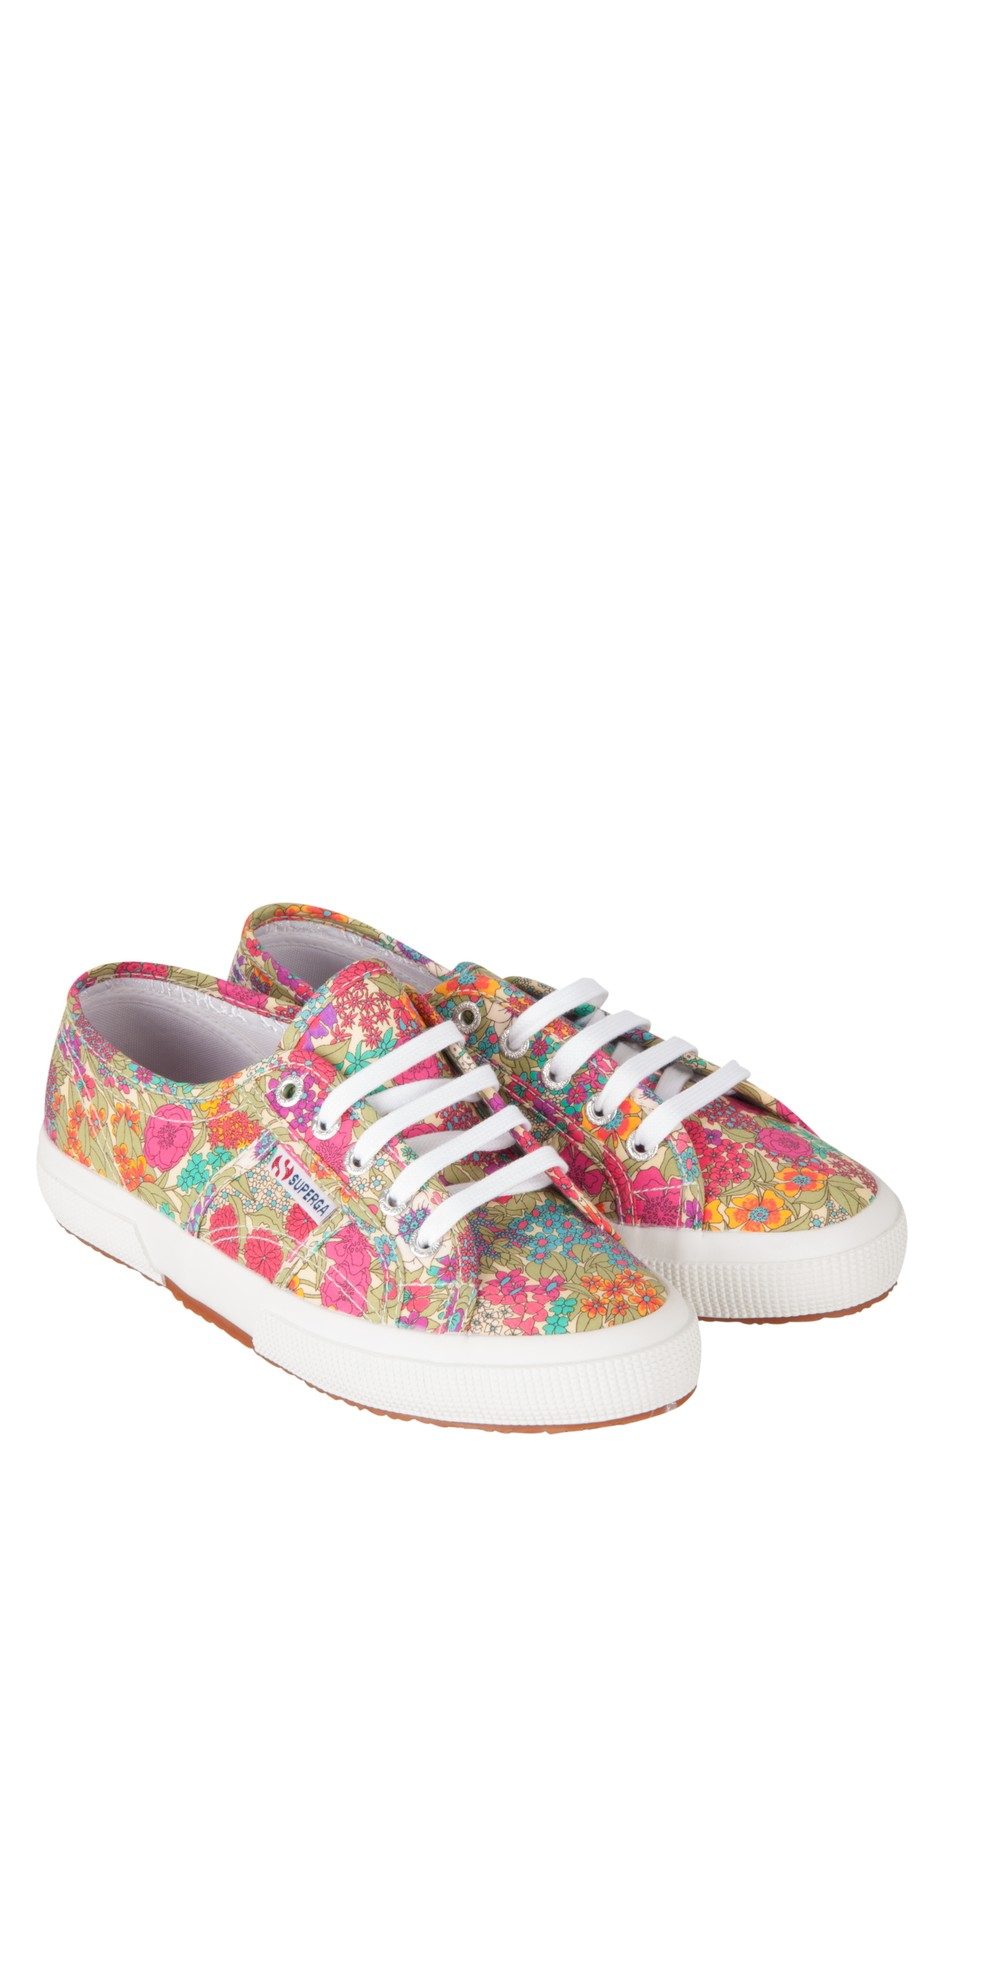 fashion style super cheap new arrival Superga Liberty Print 2750 Pump in CIARA